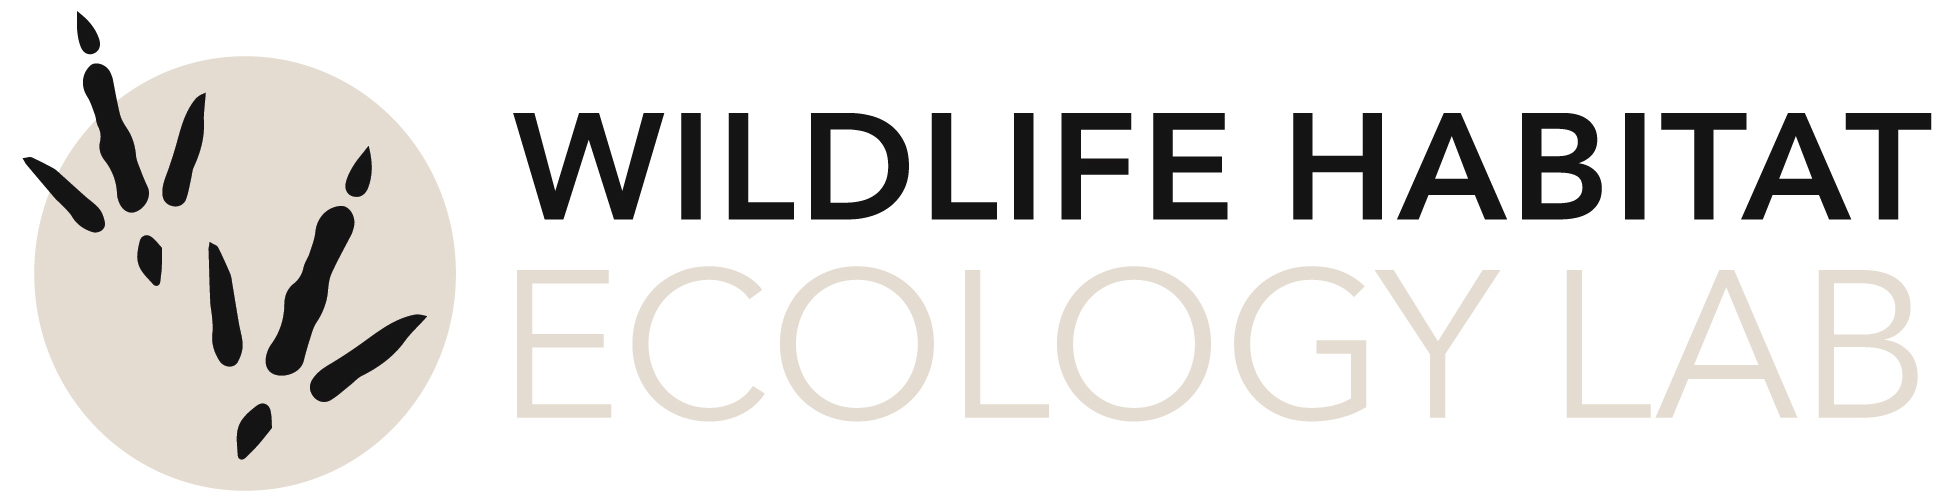 Wildlife Habitat Ecology Lab Logo